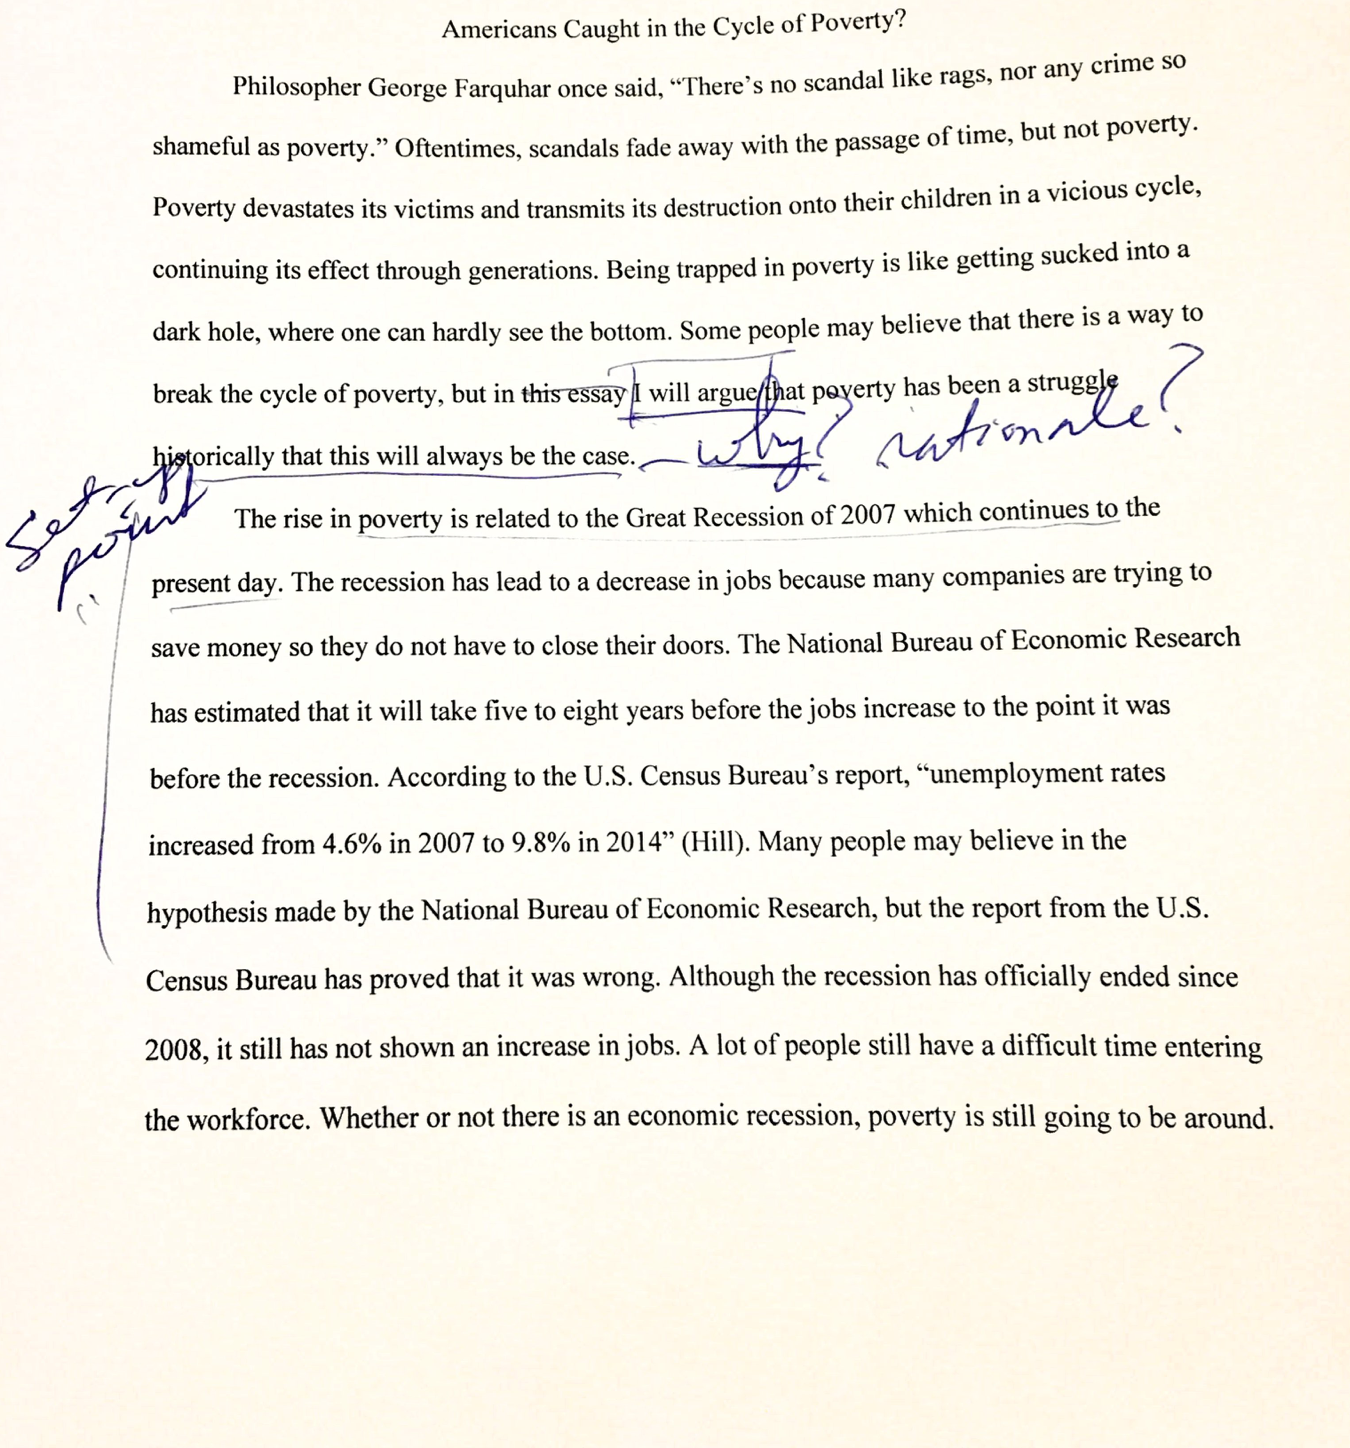 006 Correct My Essay Stupendous Auto Who Can Proofread Full